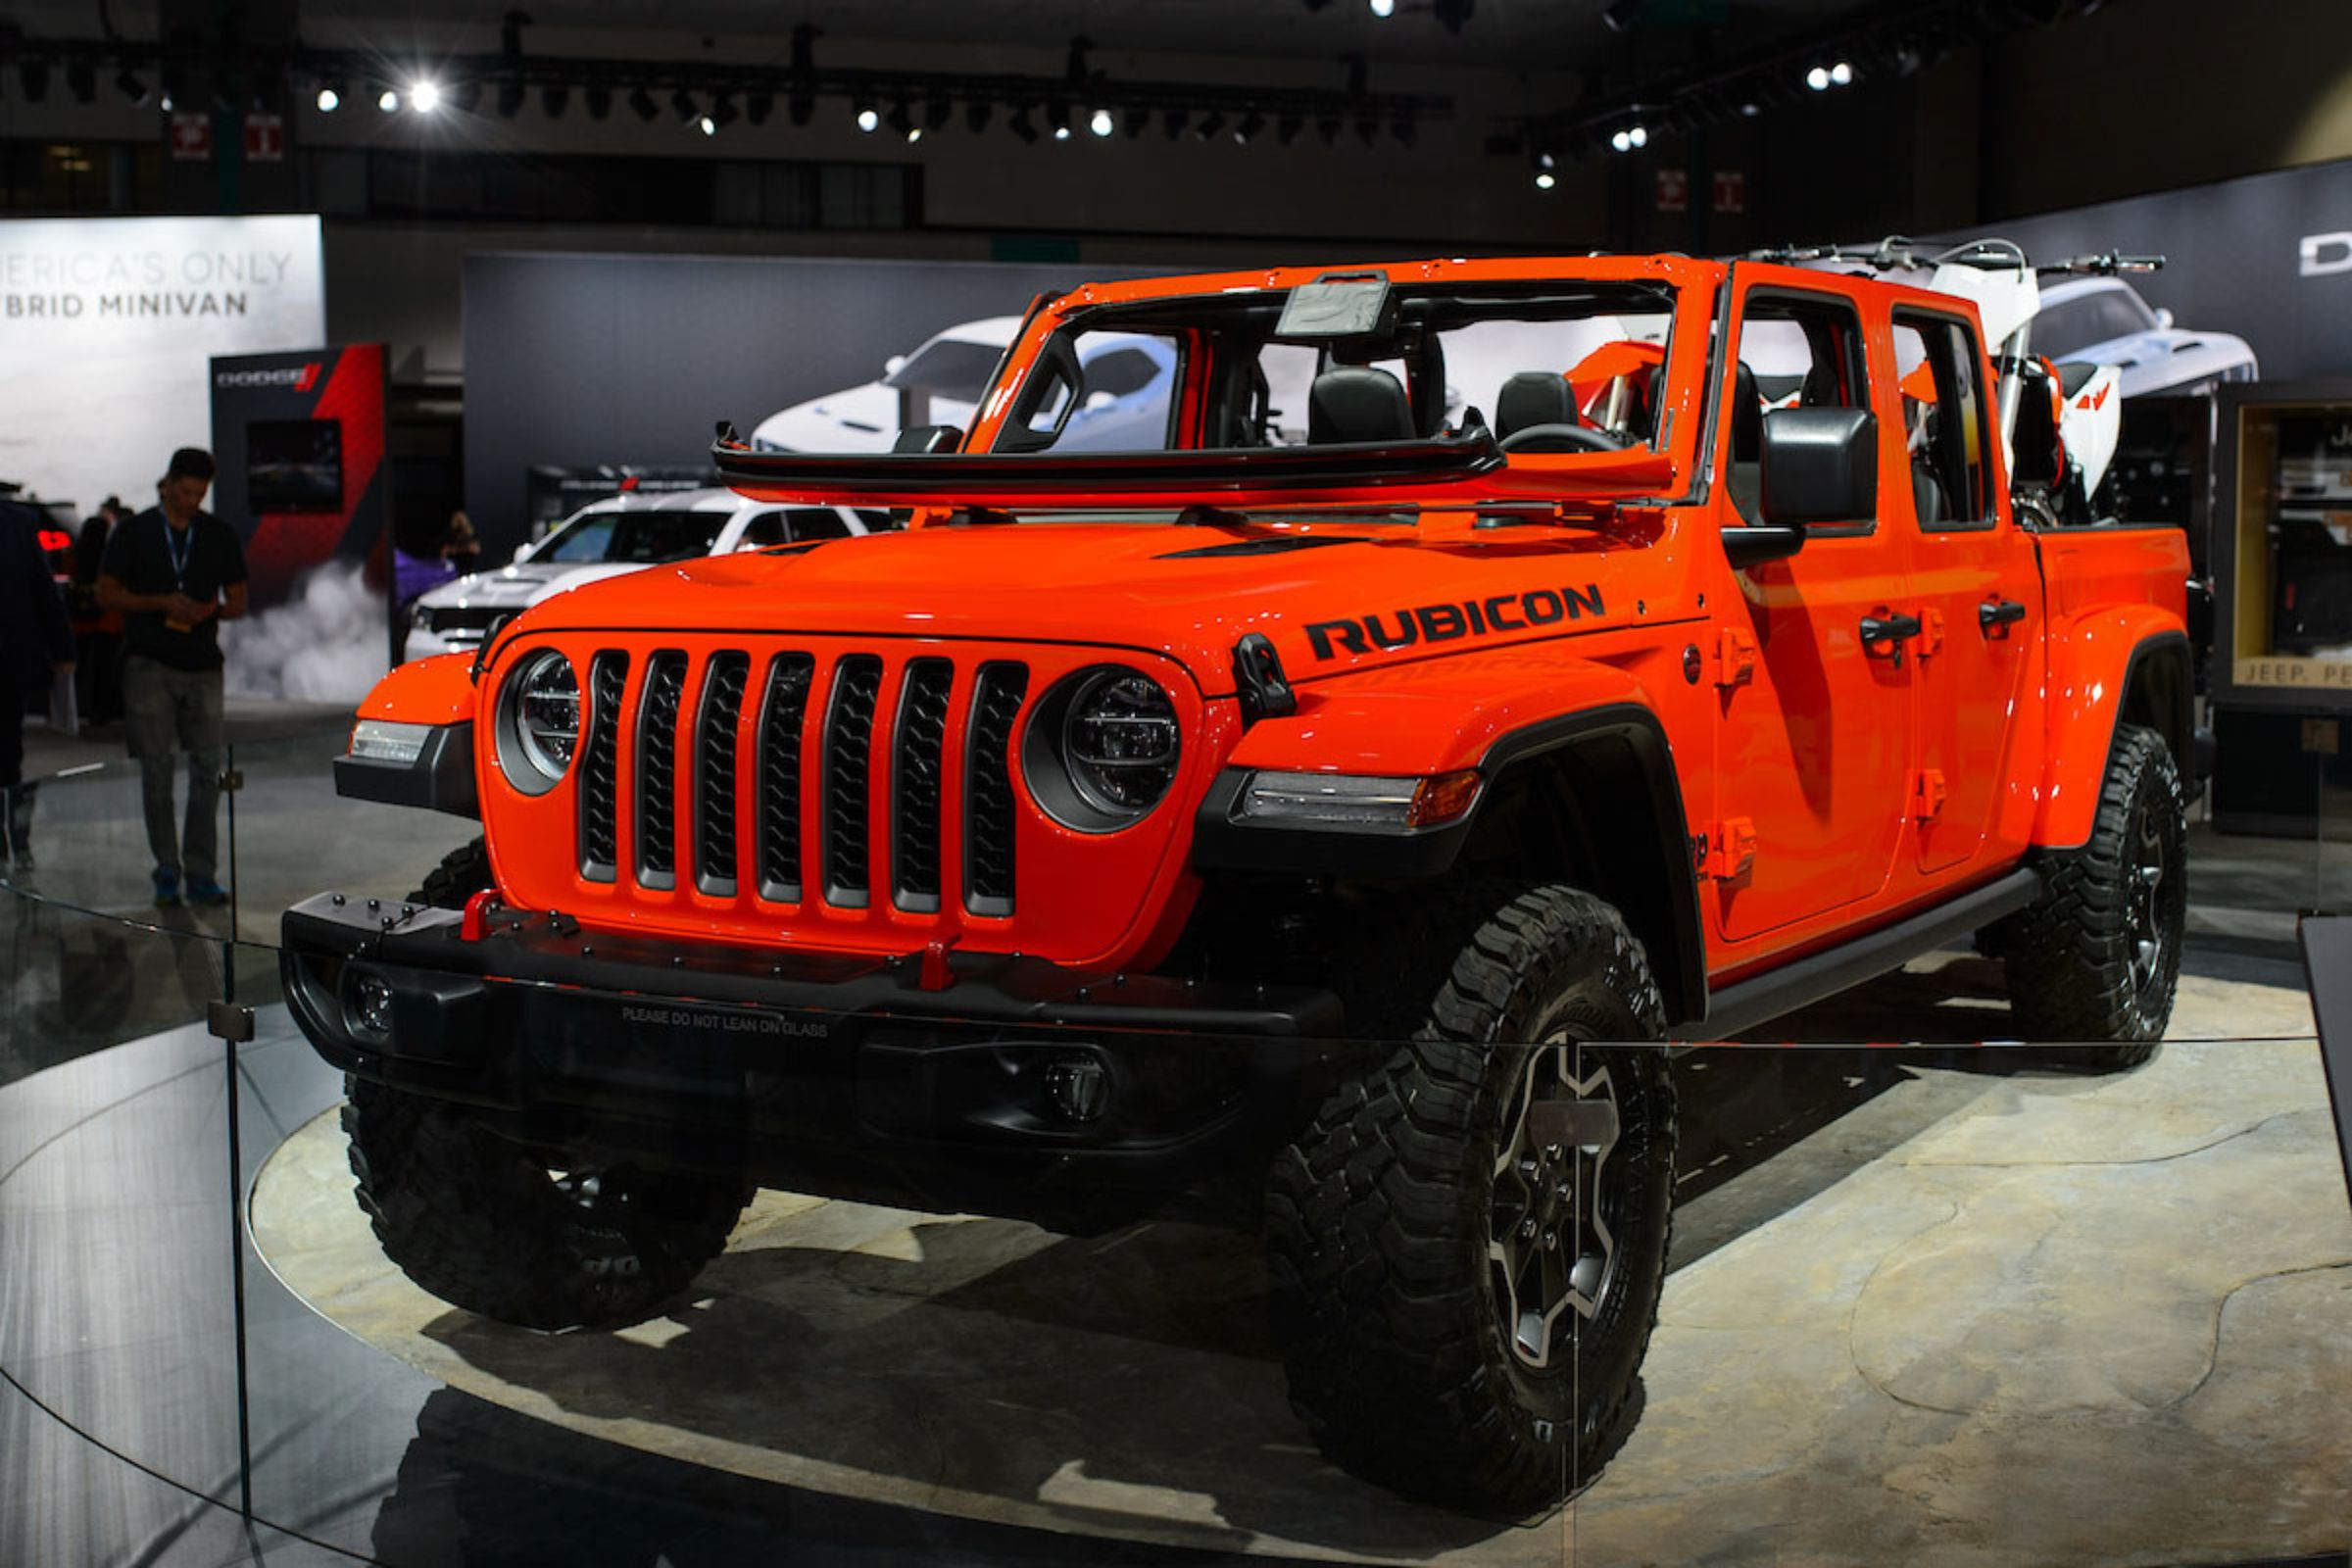 Jeep Gladiator Jt Wikipedia In 2020 Jeep Gladiator Jeep Truck